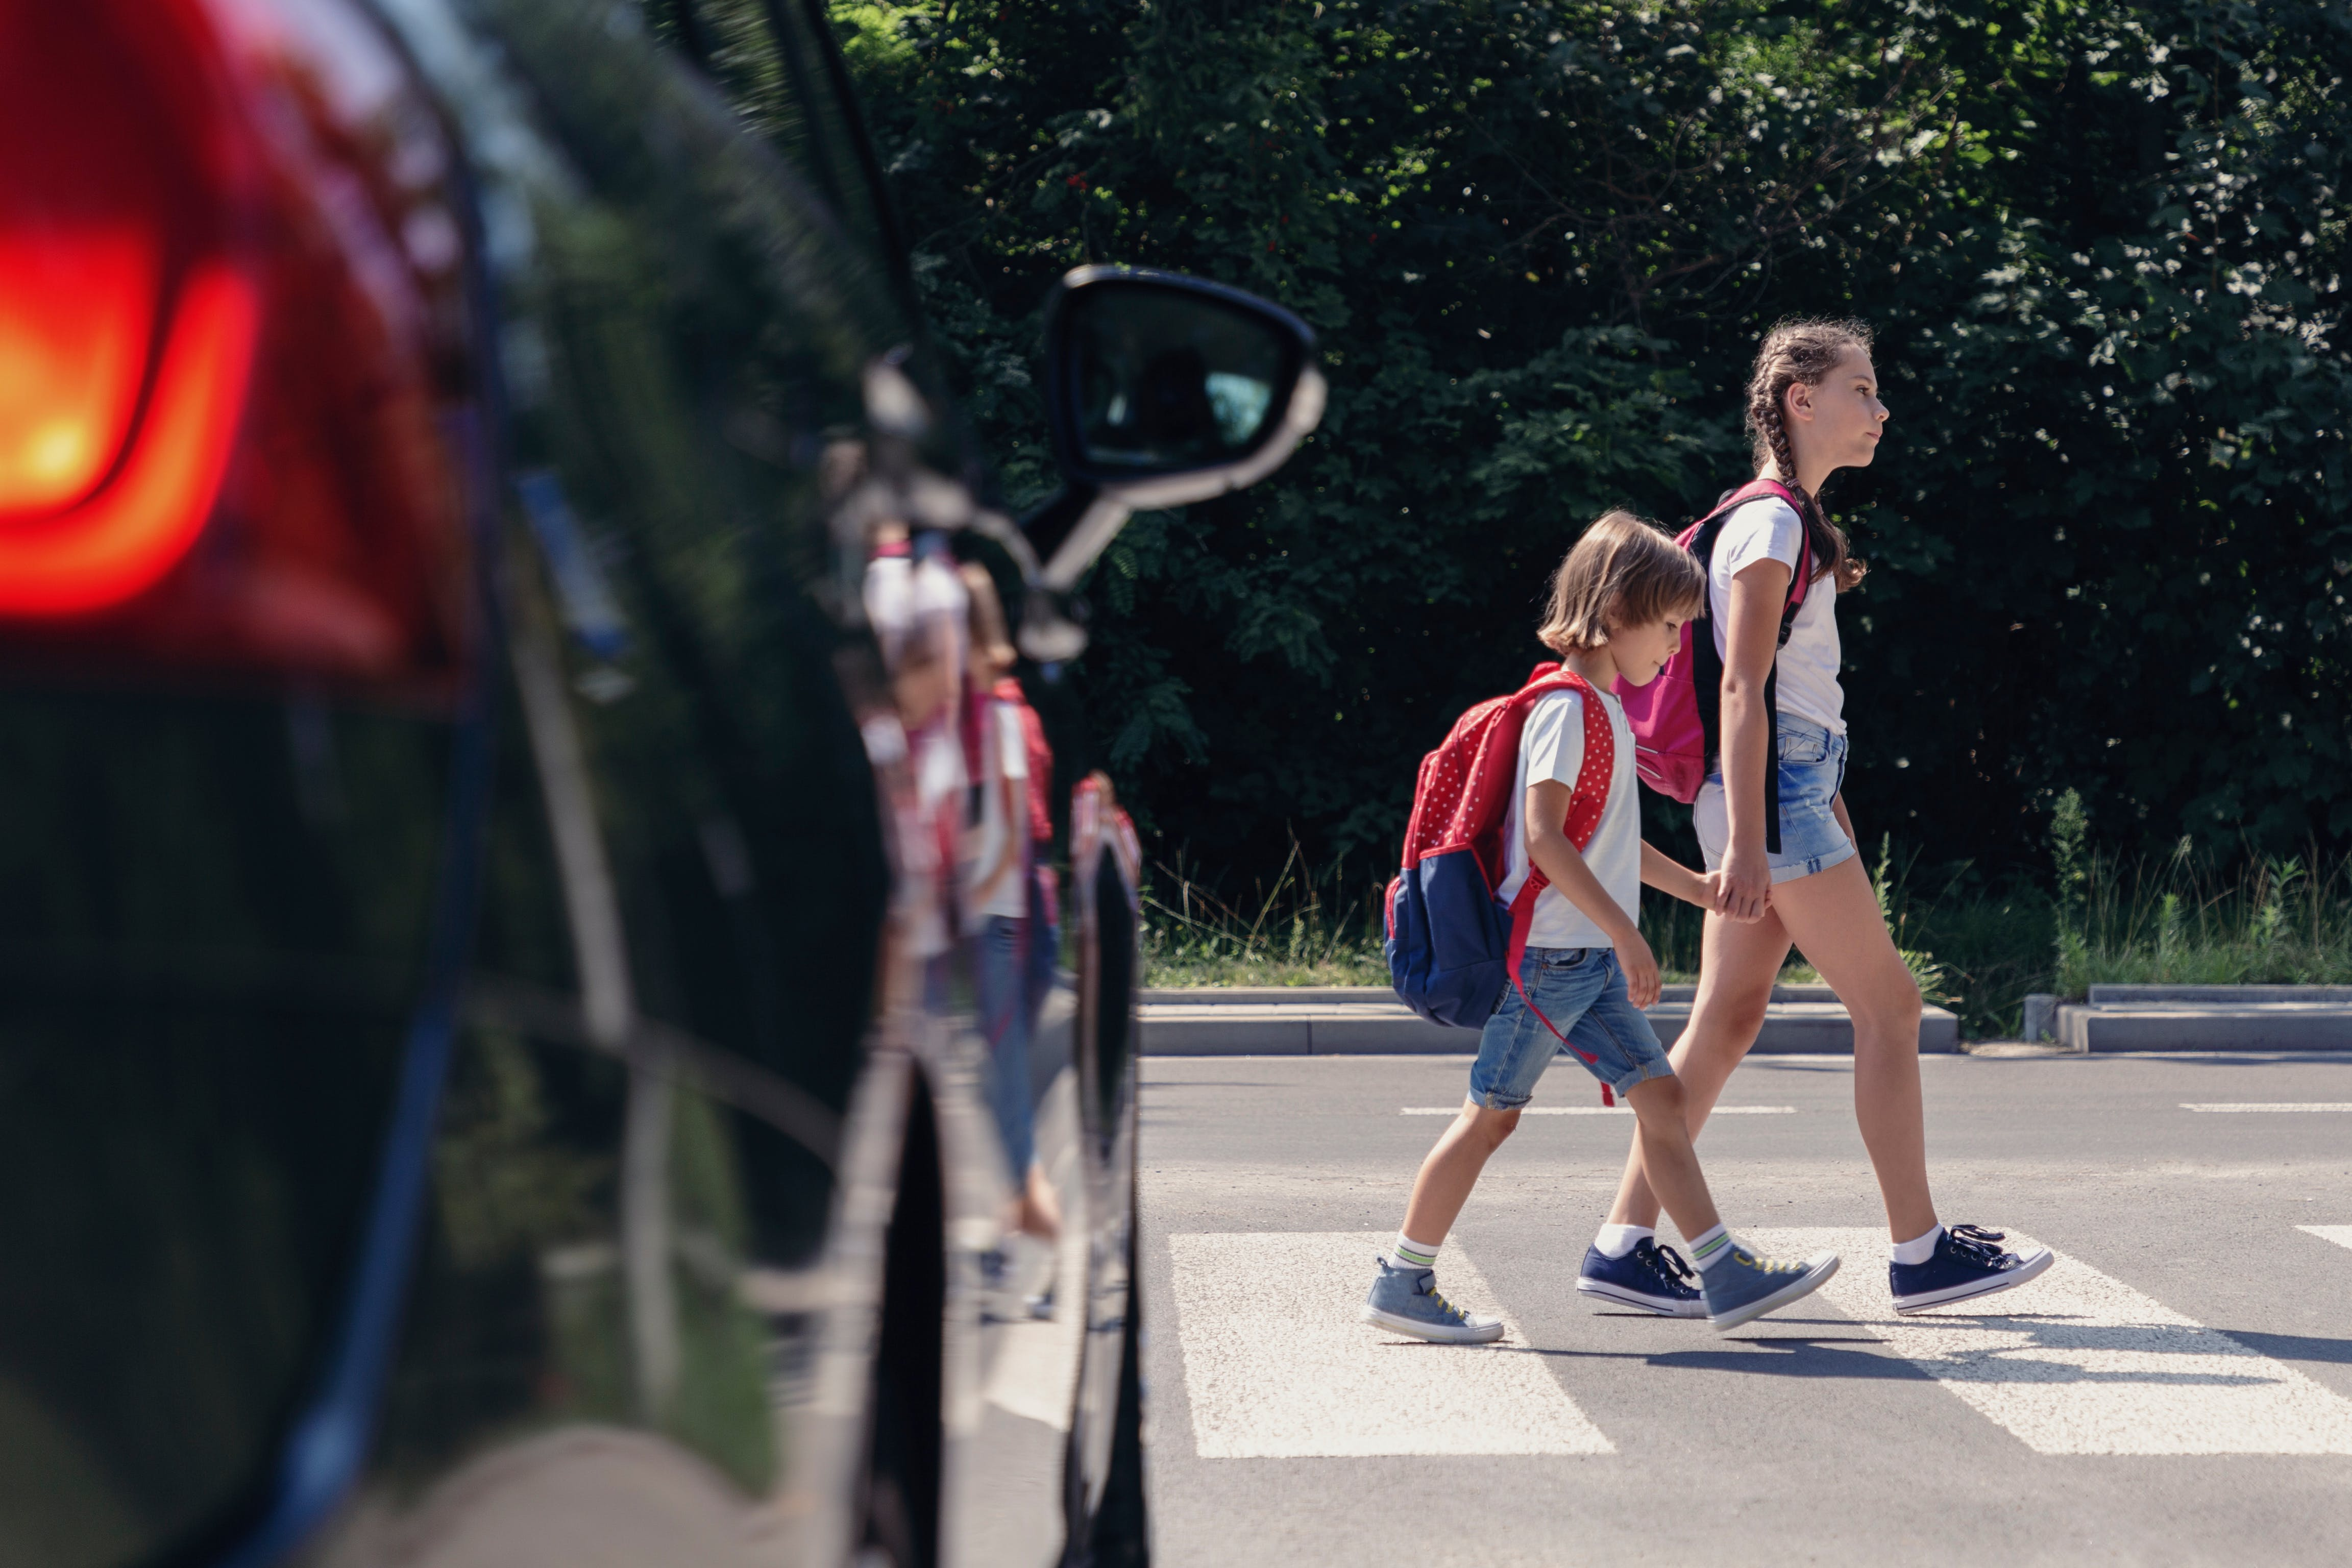 Kids crossing the road at a pedestrian crossing